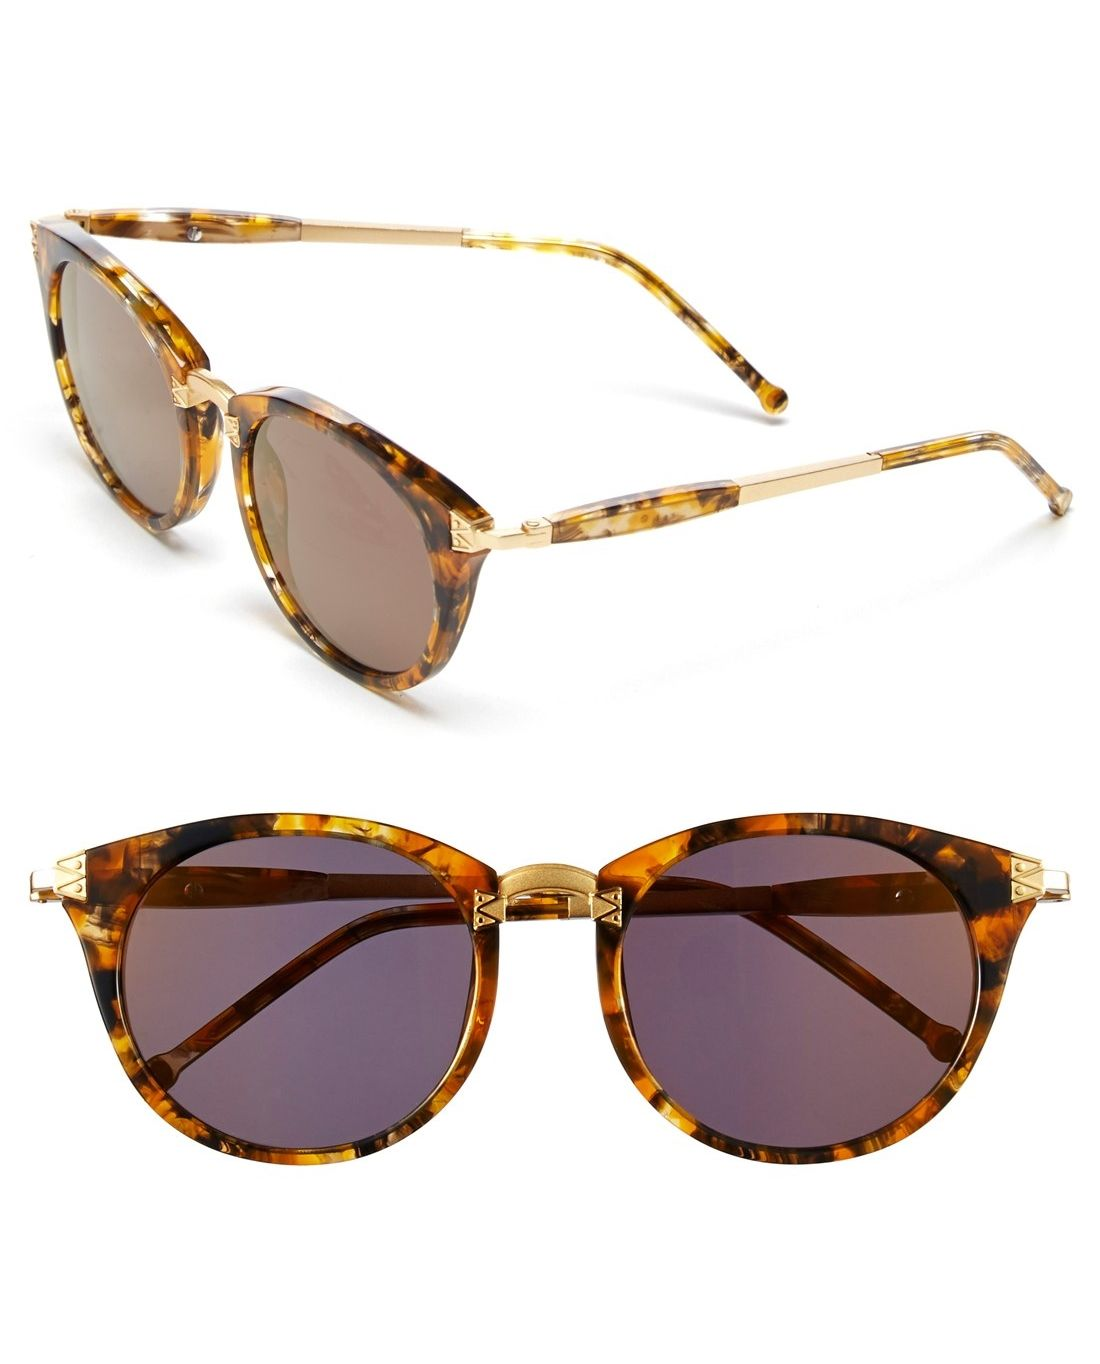 2455d43bdc26 These retro cat-eye sunglasses totally amp up the cool-factor ...